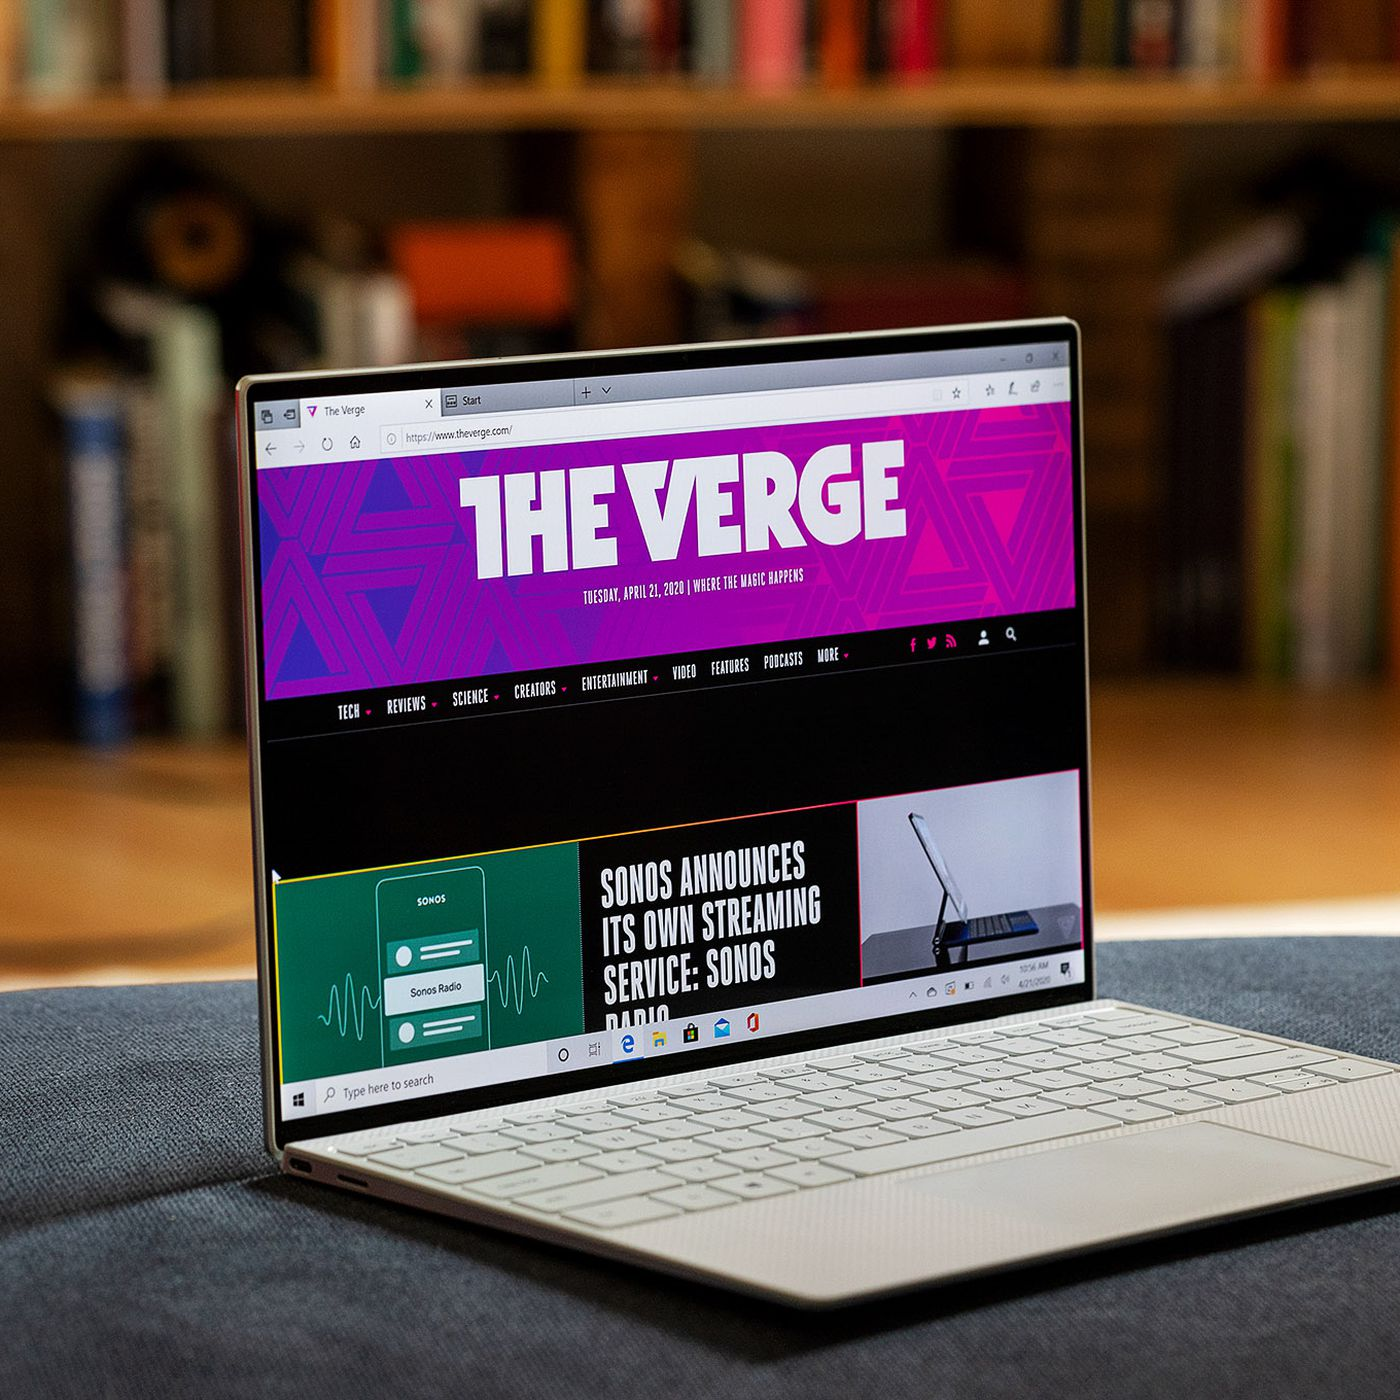 Dell Xps 13 2020 Review The Best Windows Laptop Gets Better The Verge